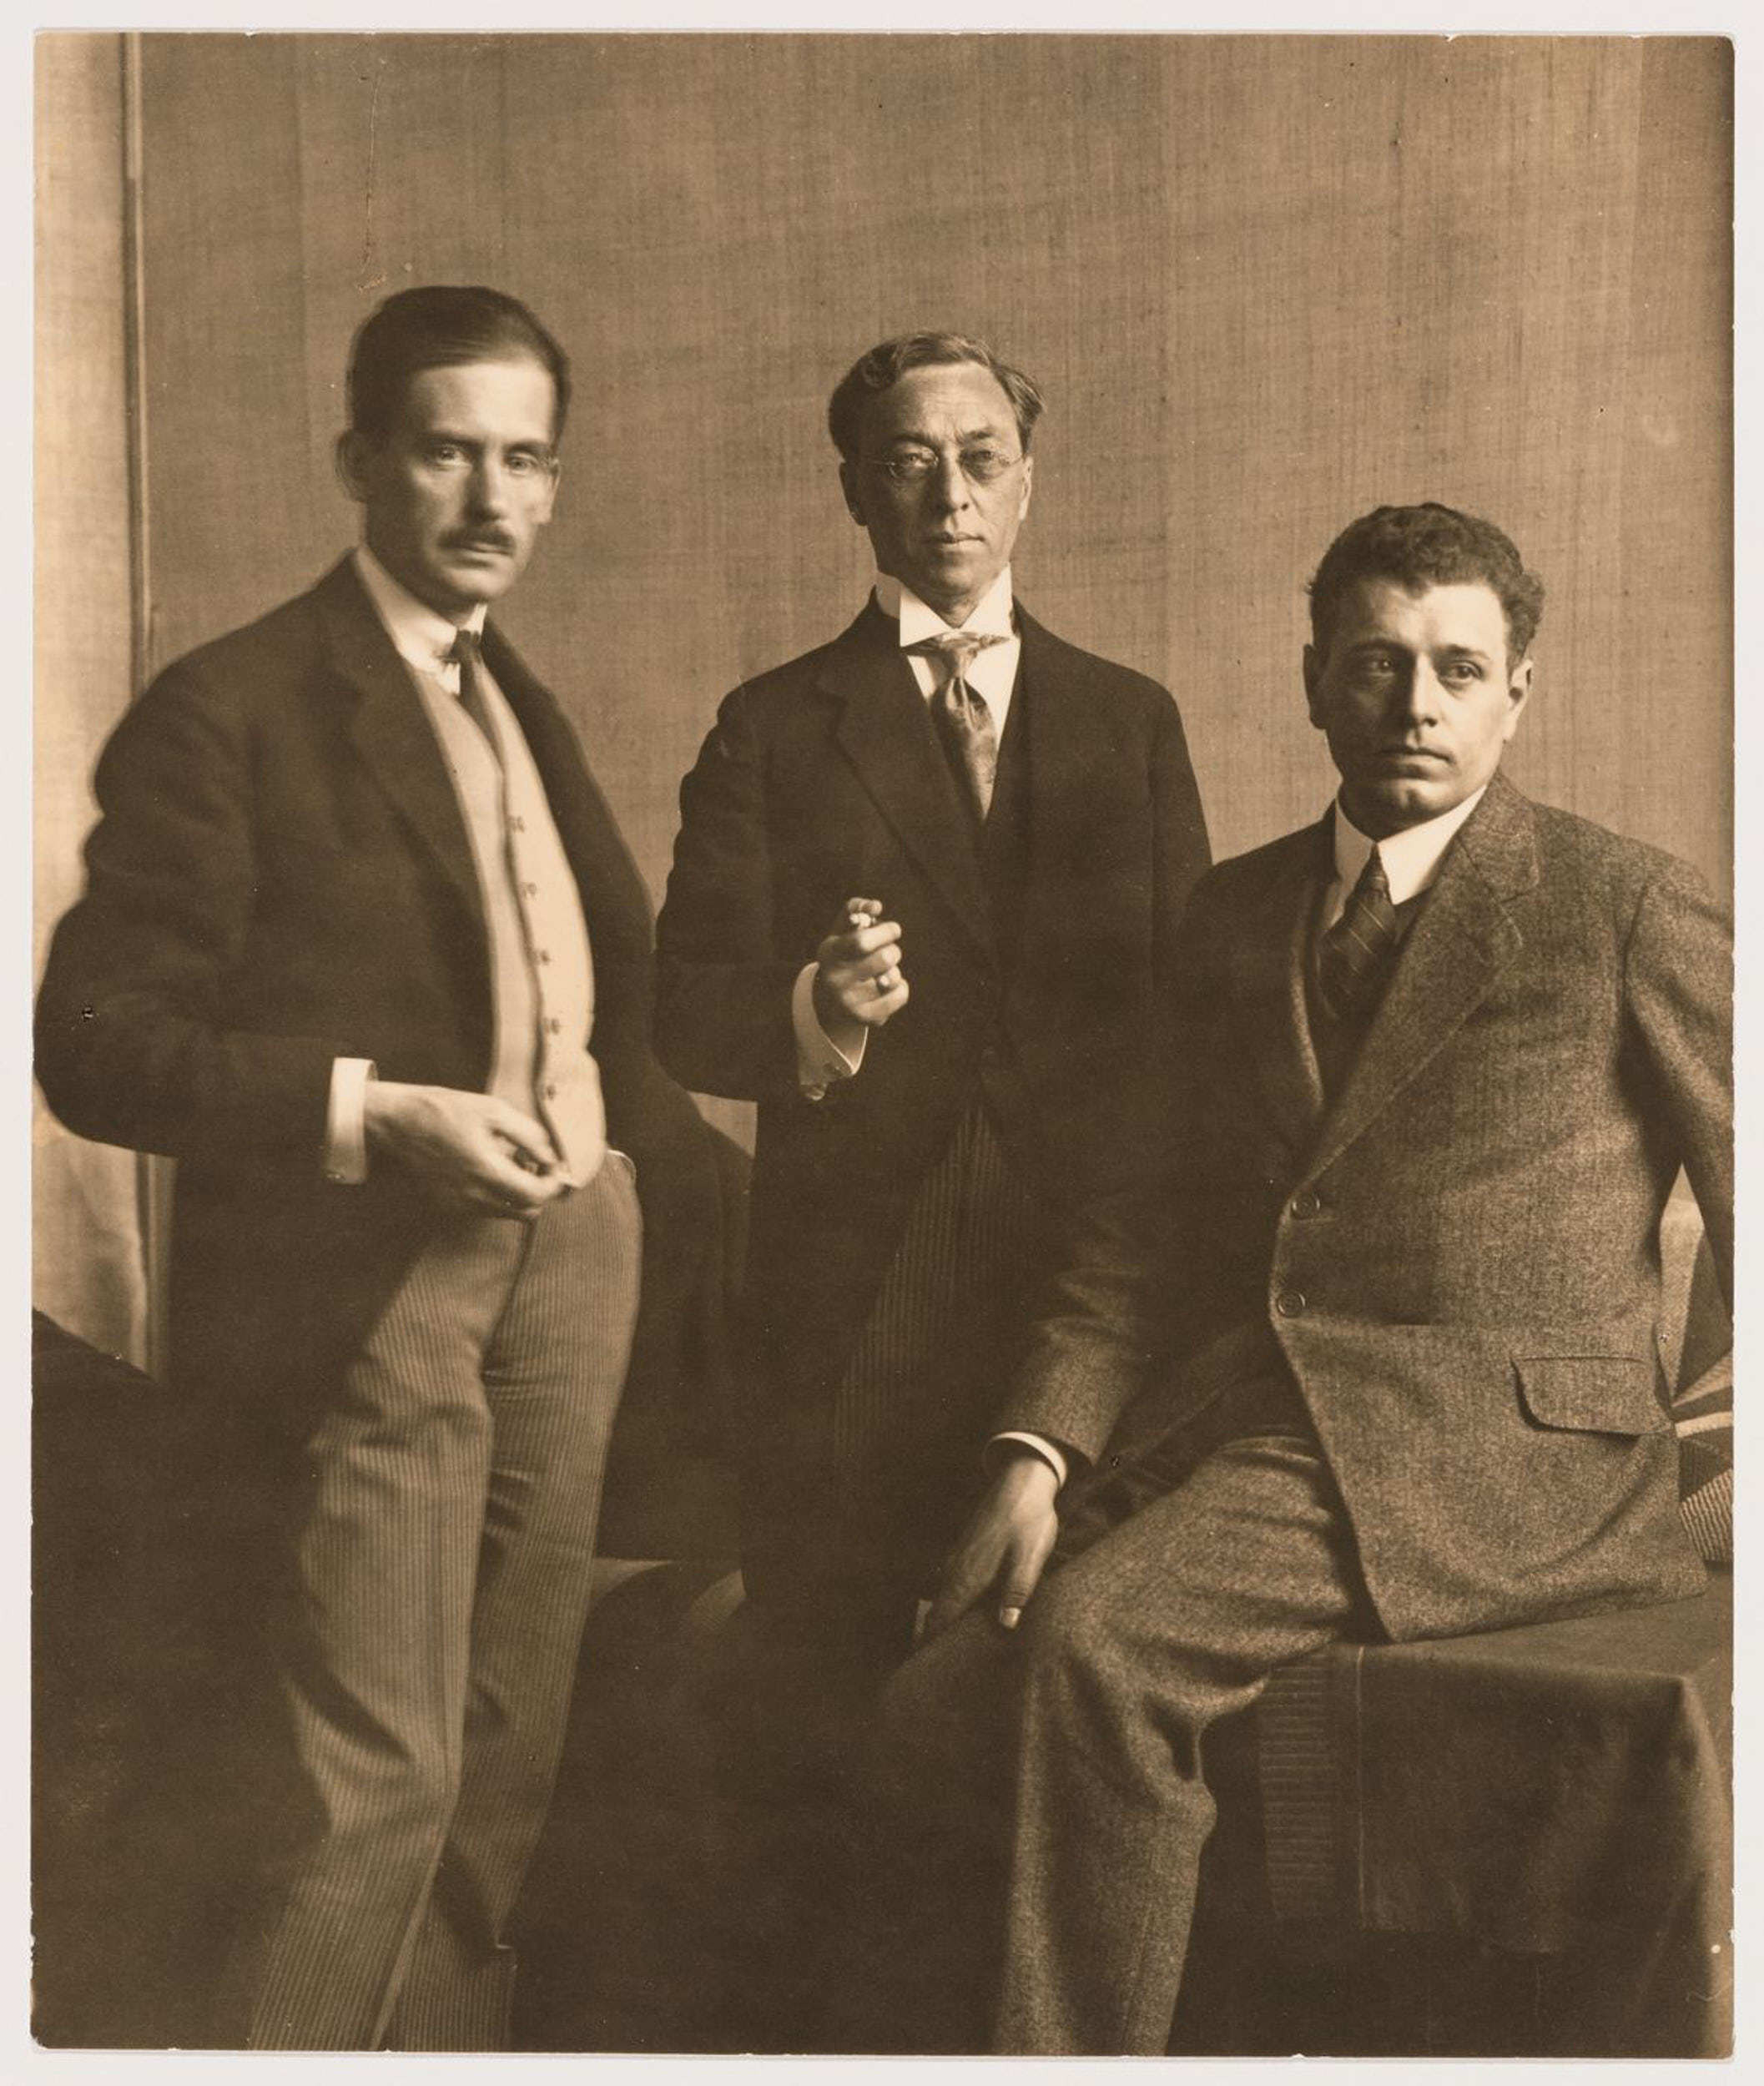 Portrait of J.J.P. Oud, Wassily Kandinsky and Walter Gropius at the Bauhaus Exhibition of 1923 in Weimar, Germany — Collection Centre Canadien d'Architecture/Canadian Centre for Architecture, Montréal